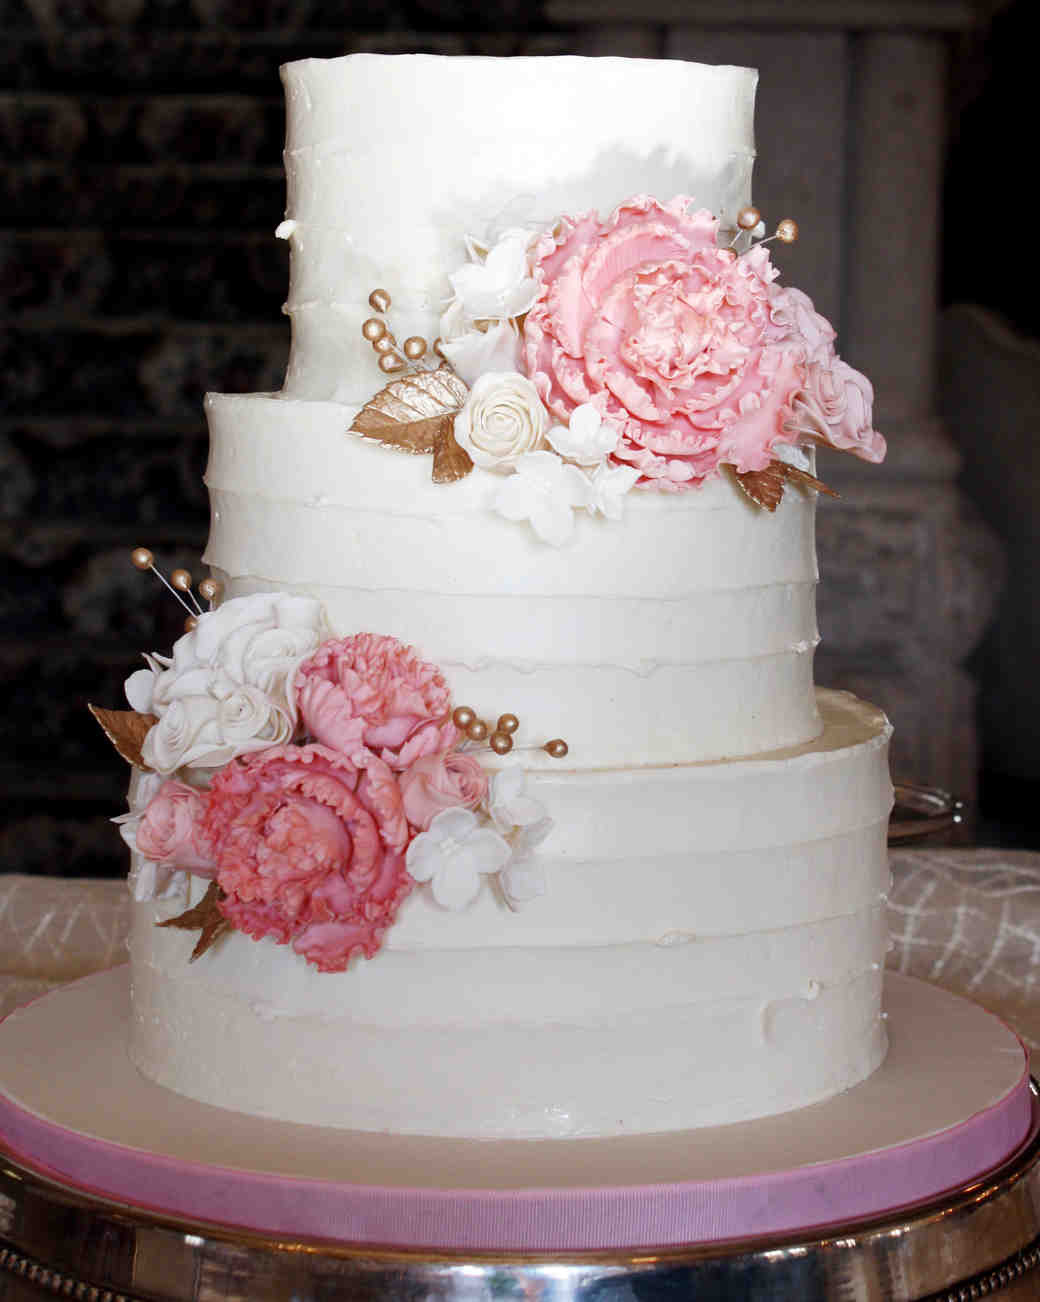 Wedding Cake Frosting Recipes  A Sweet Guide to Choosing a Frosting for Your Wedding Cake